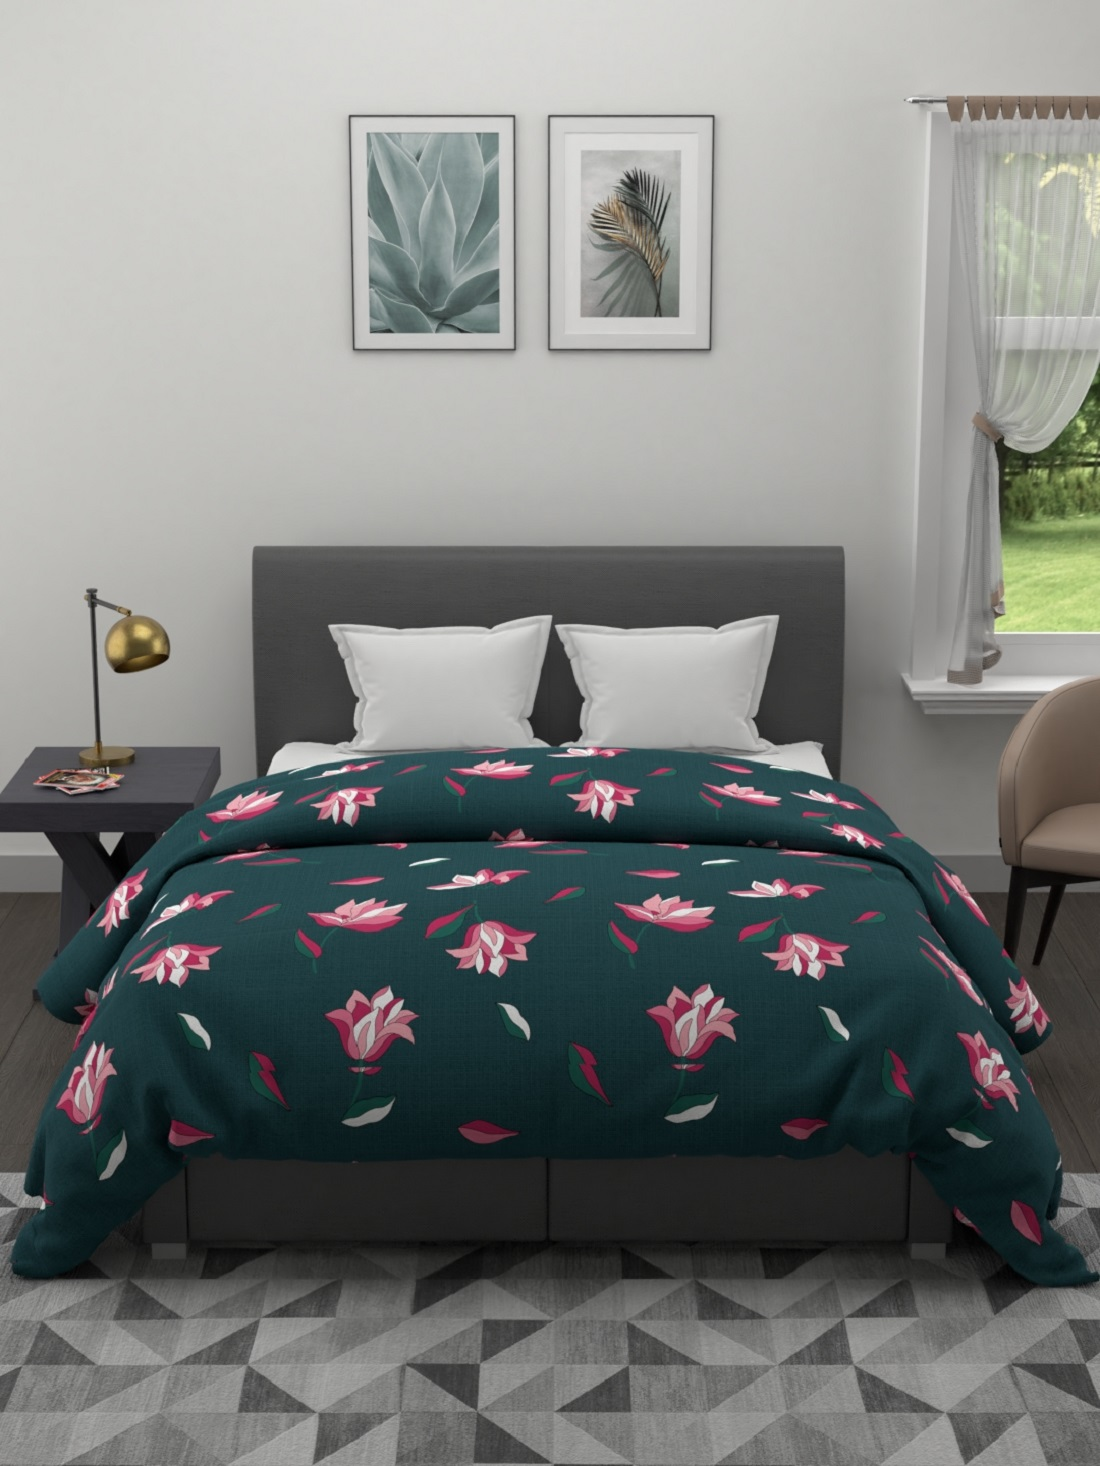 Kuber Industries Floral Design Glace Cotton Ac Comforter King Size Bed Comforter Double Bed Sheet 2 Pillow Cover Green 90x100 Inches Set Of 4 Pie